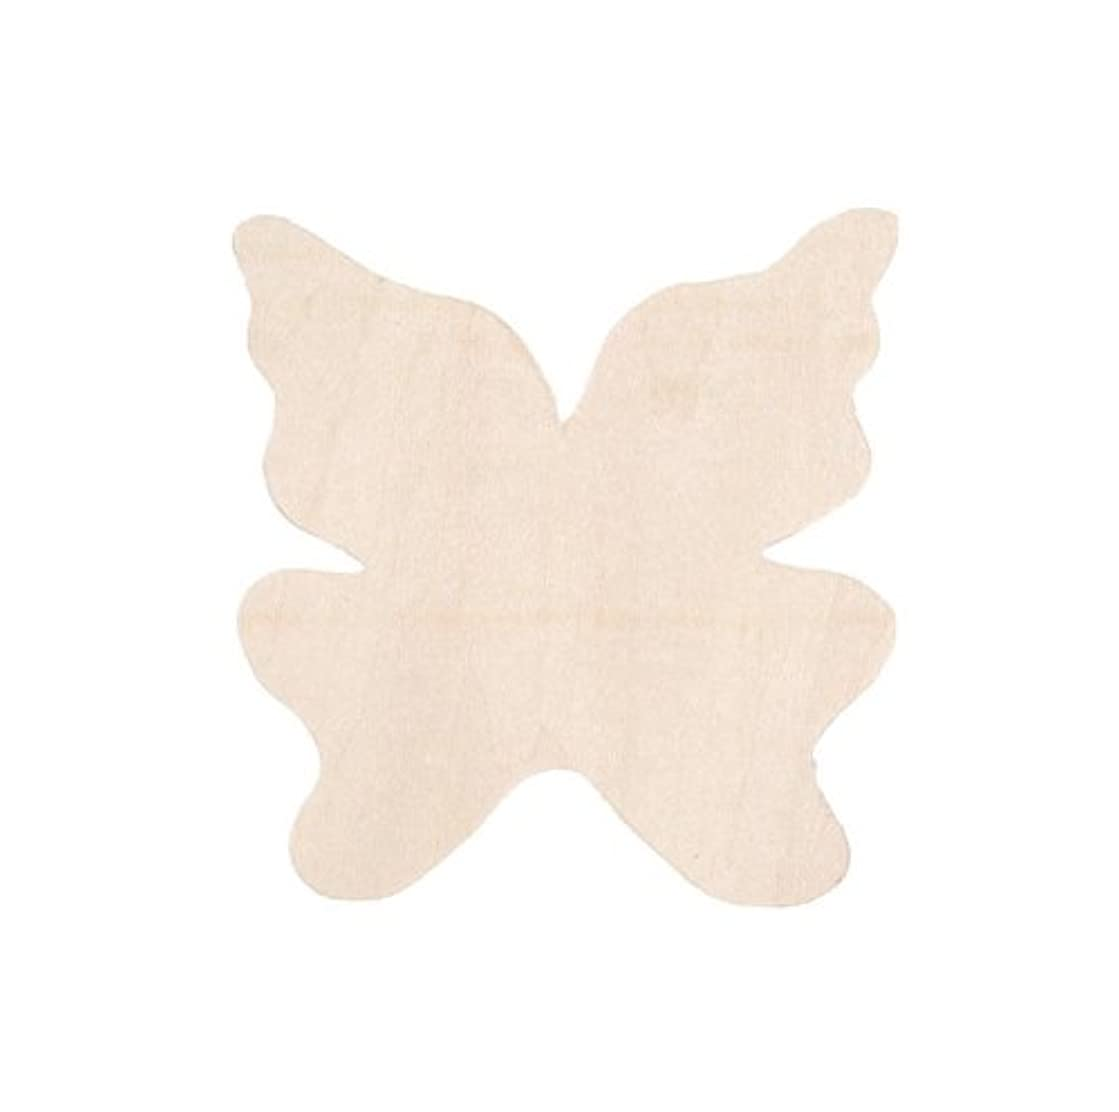 Darice 9133-51 Unfinished Wood Butterfly Shape Cutout, 3-Inch